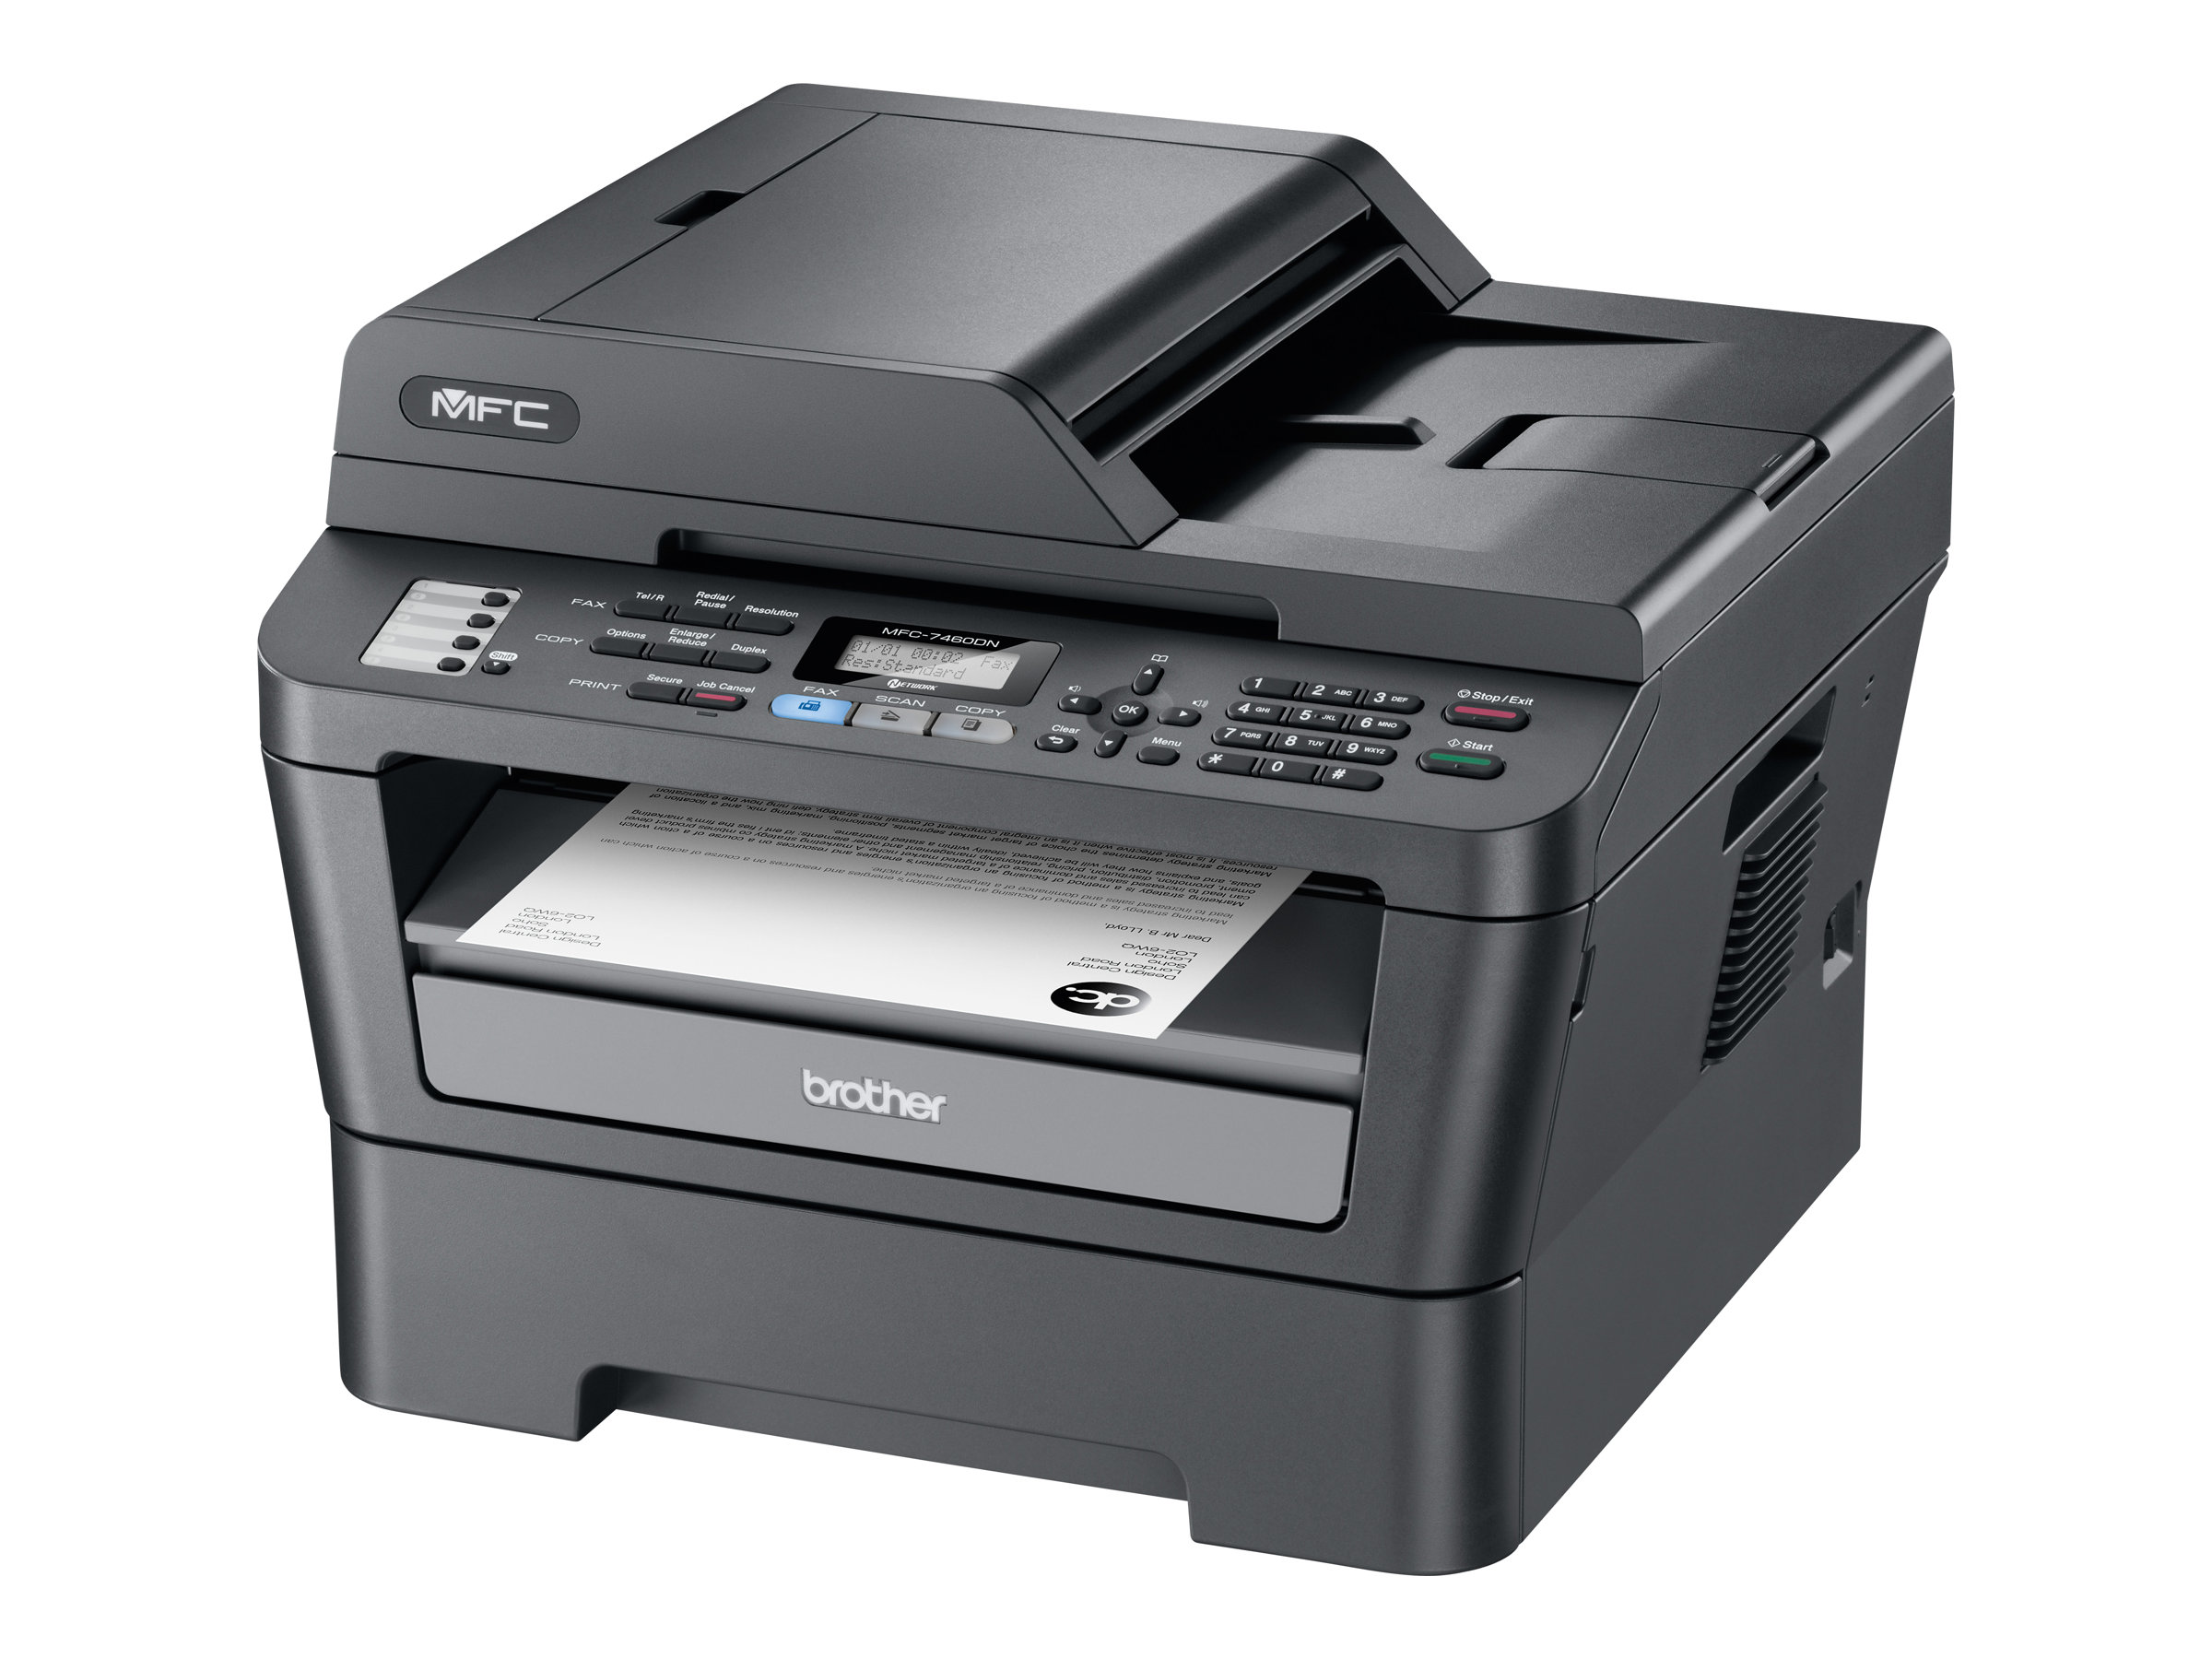 Brother MFC-7460DN multifunction printer ( B W ) by Brother